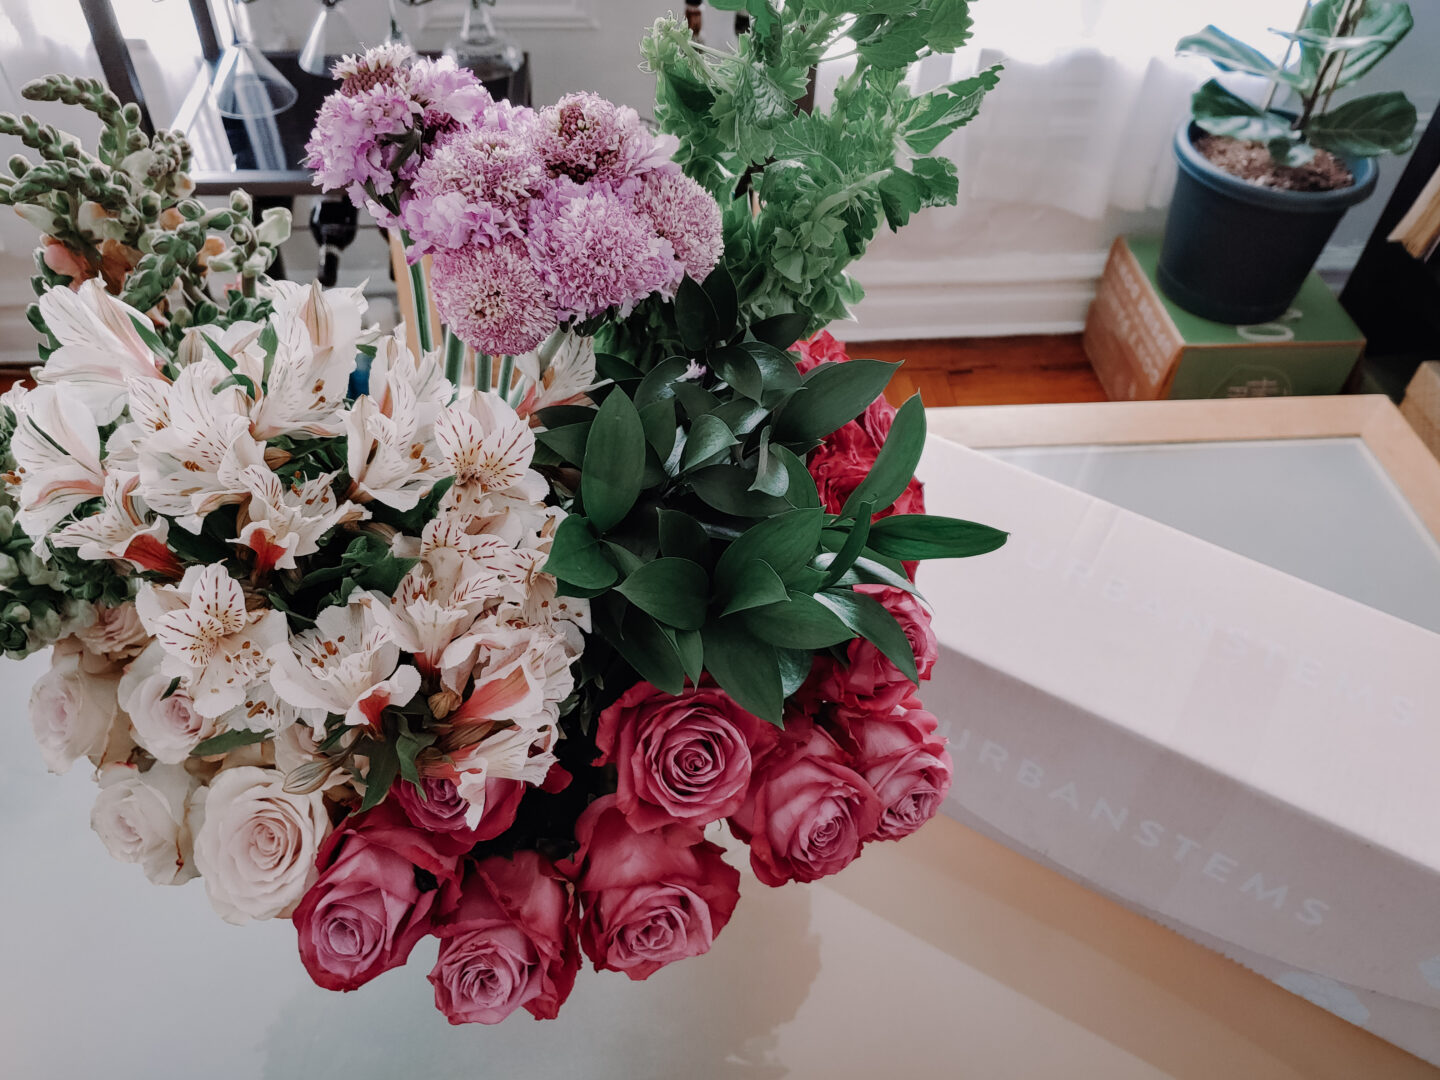 Elevate Your Everyday: Build Your Own Bouquet